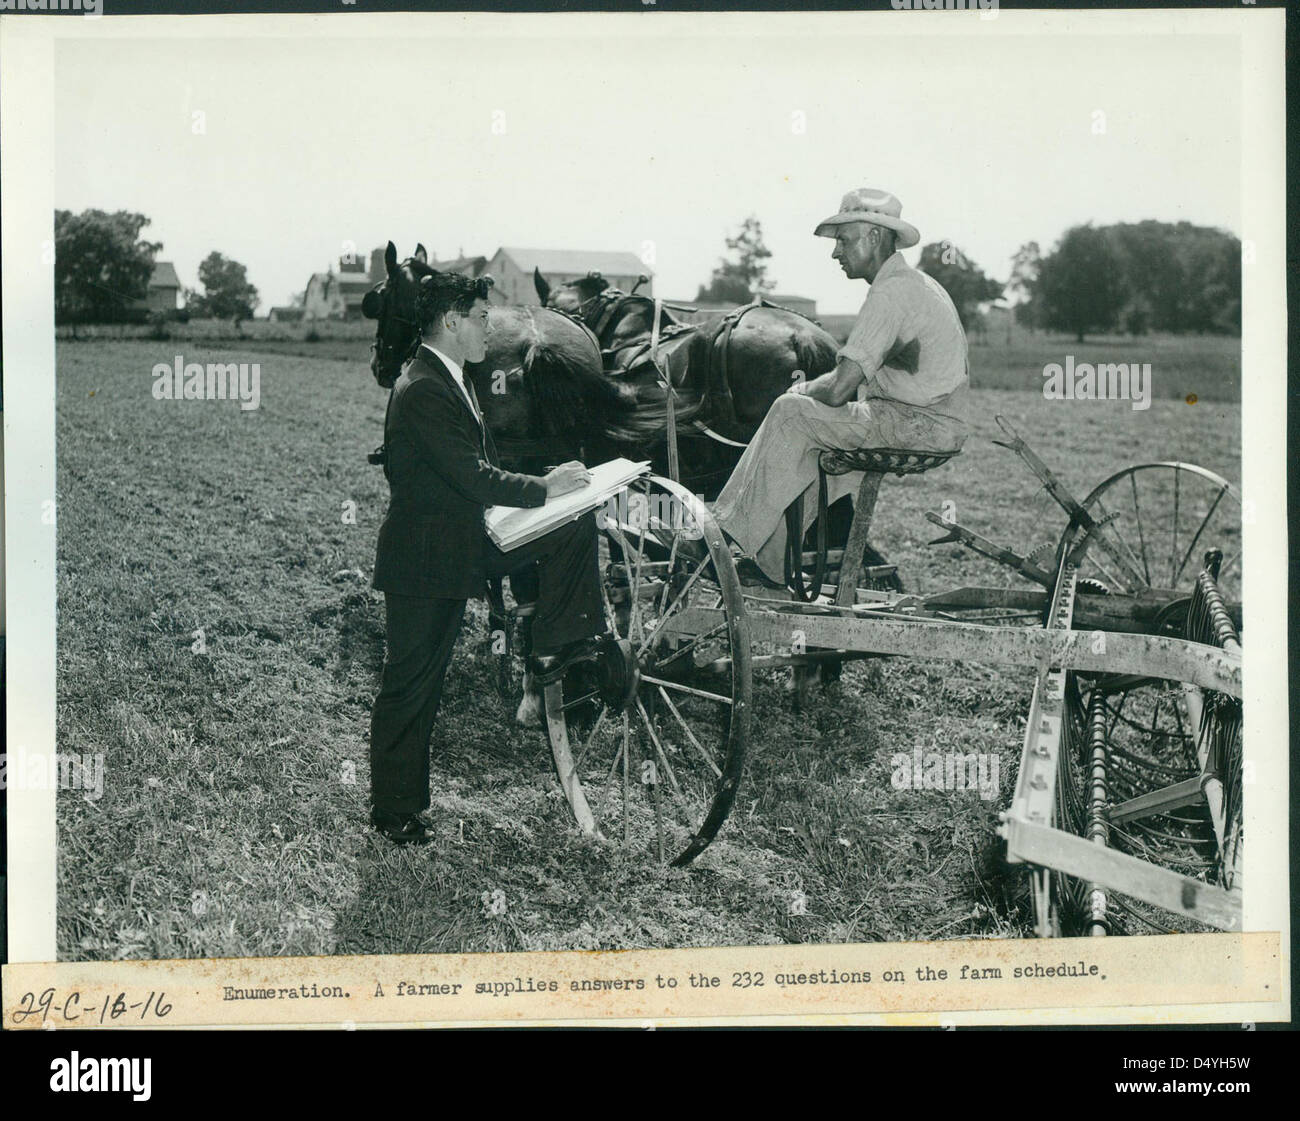 Enumeration, a Farmer Supplies Answers to the 232 Questions on the Farm Schedule, 1940 - 1941 - Stock Image